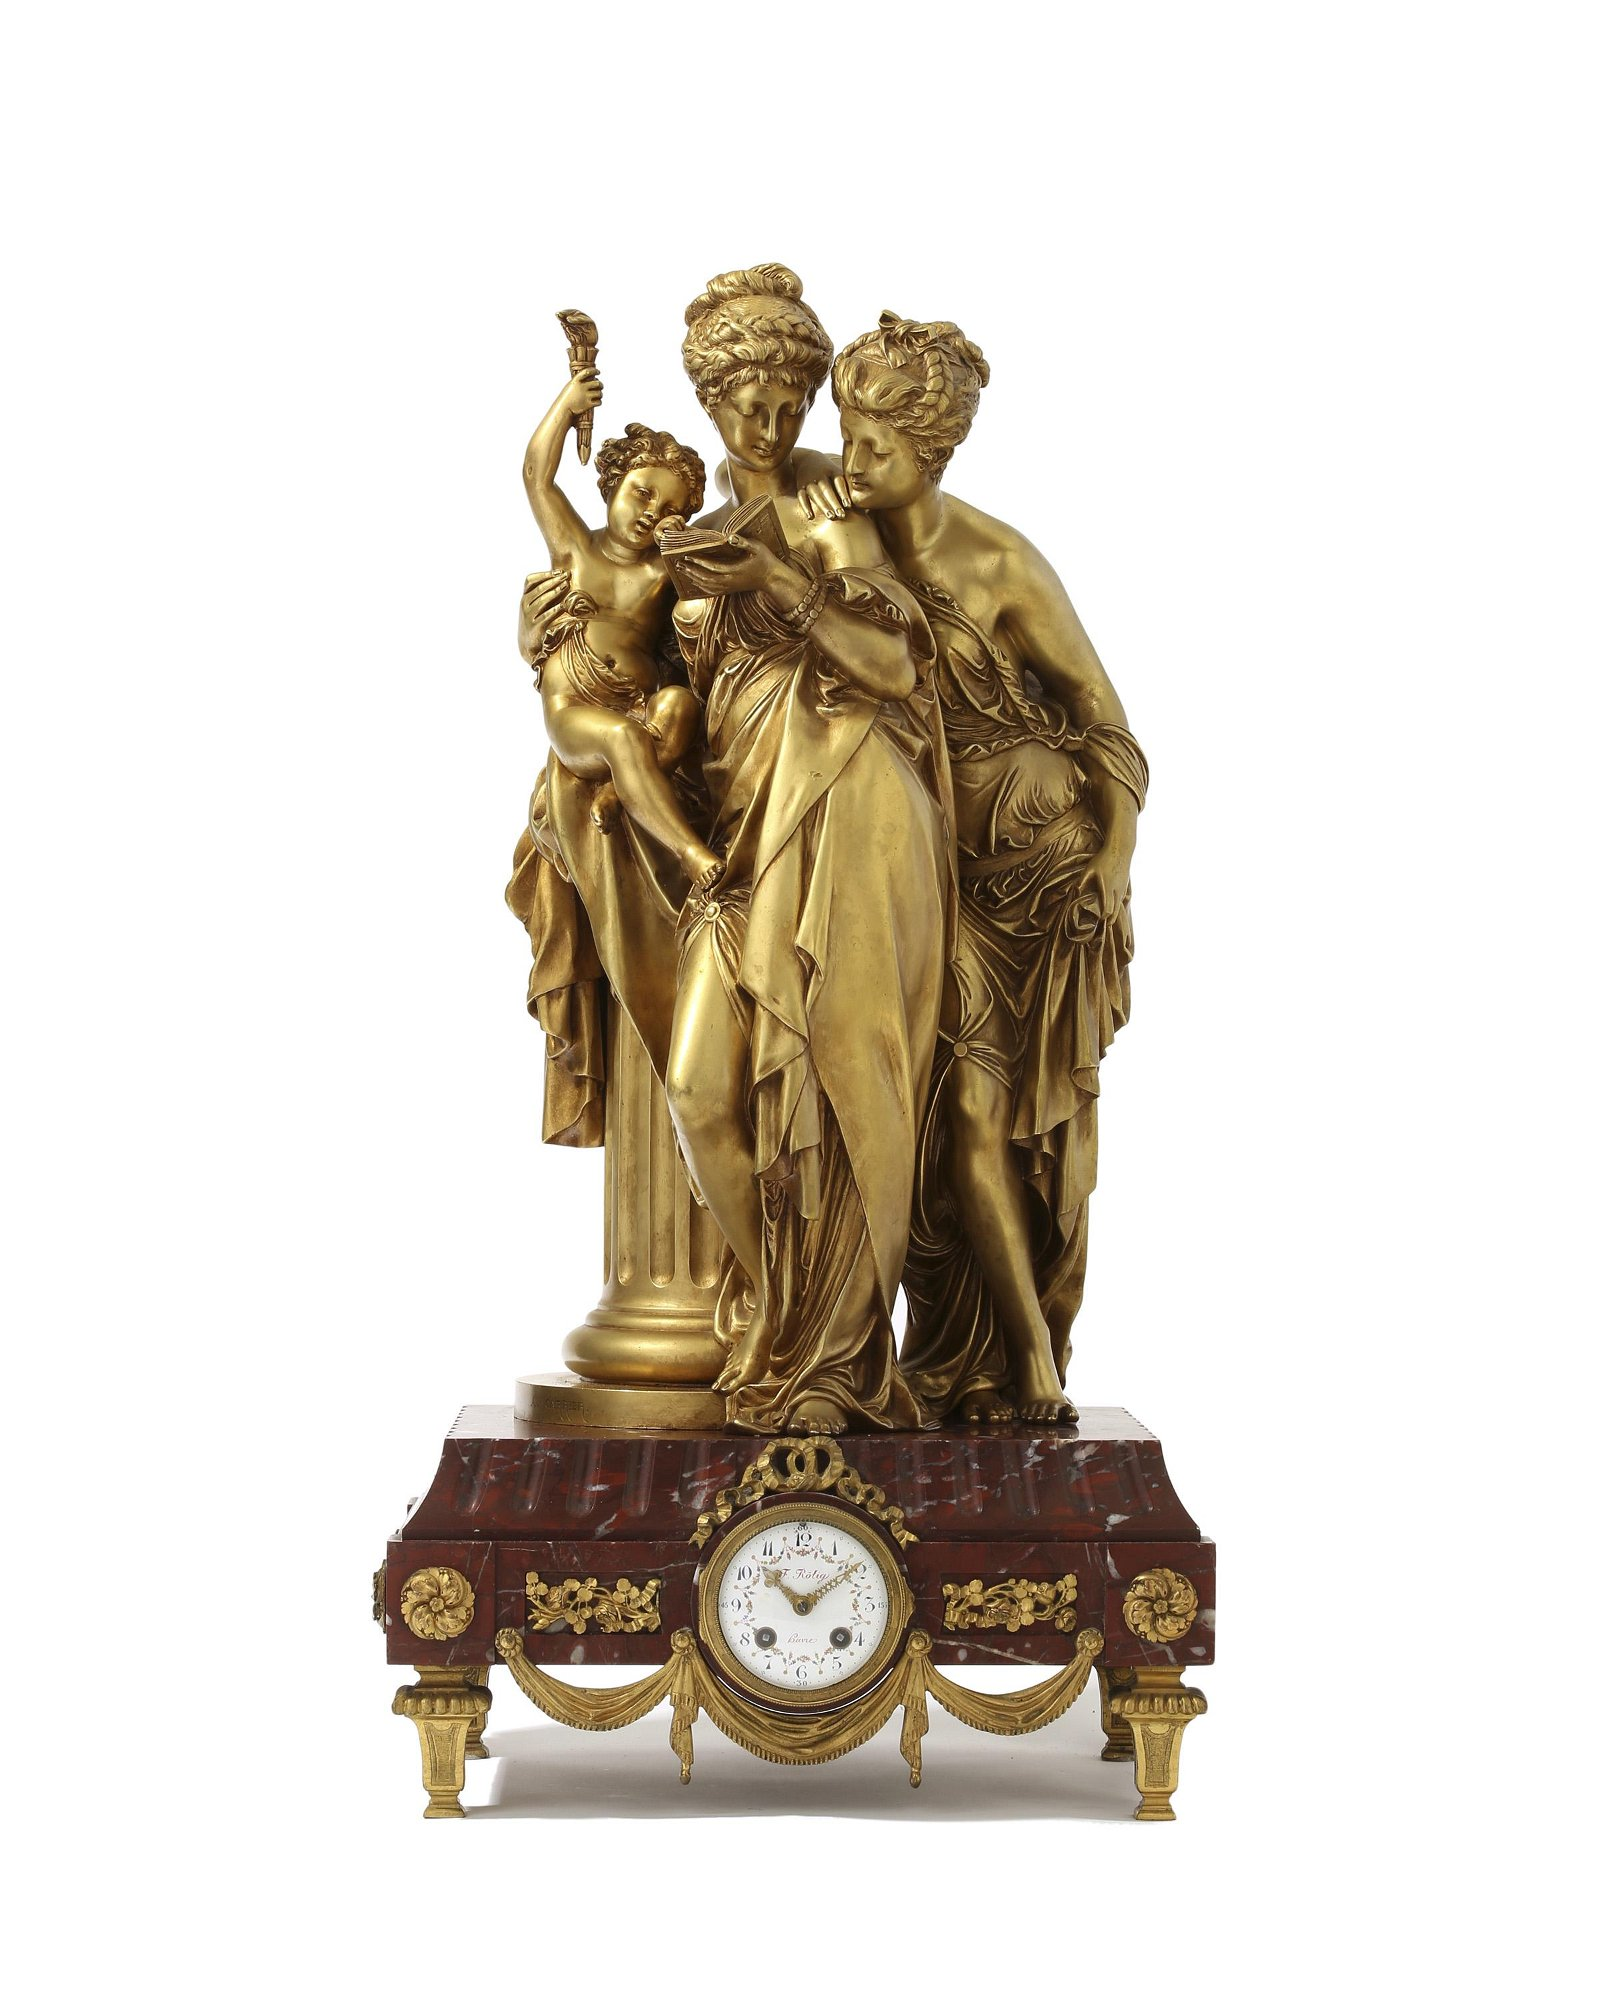 A Frederick Rotig gilt-bronze and rouge marble mantle